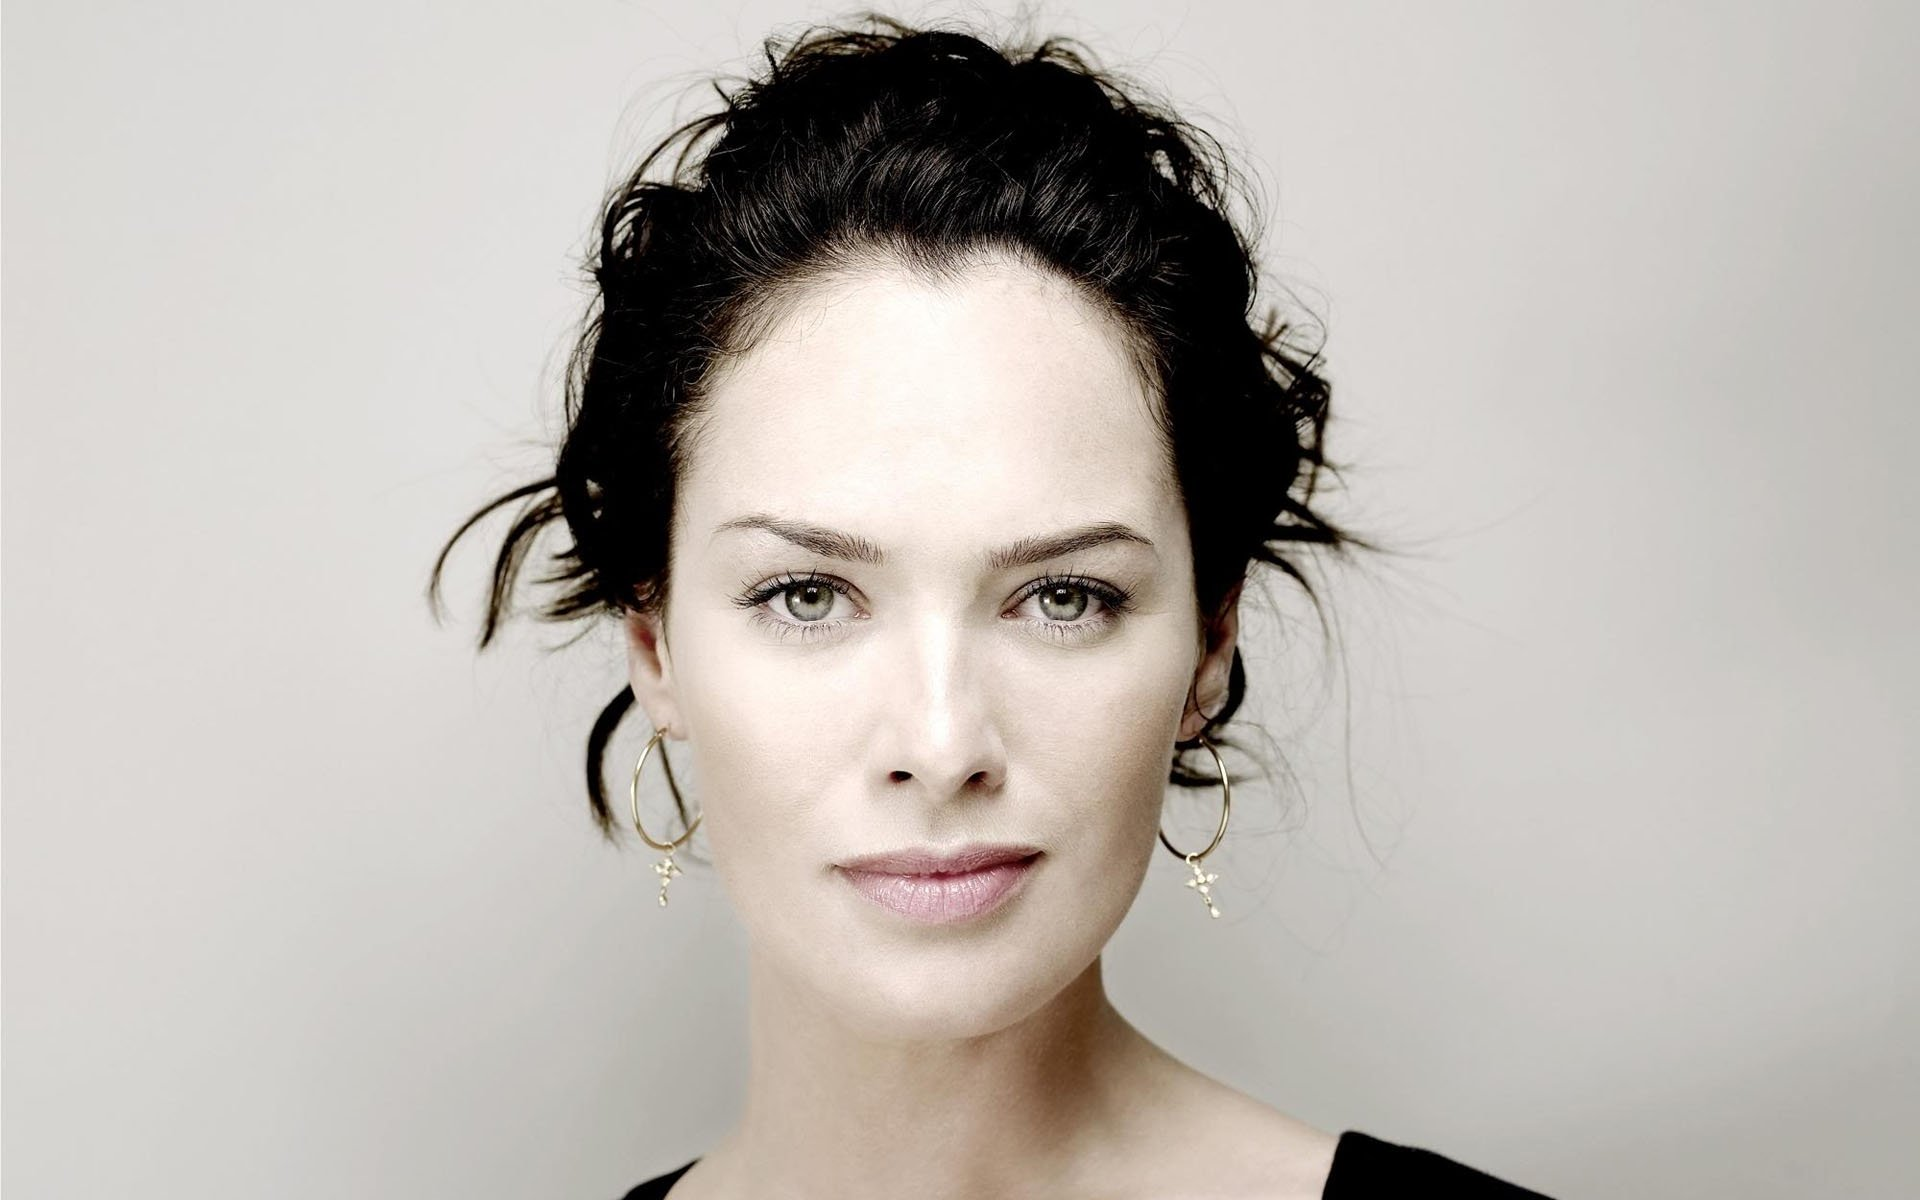 Free Lena Headey high quality wallpaper ID:321466 for hd 1920x1200 computer